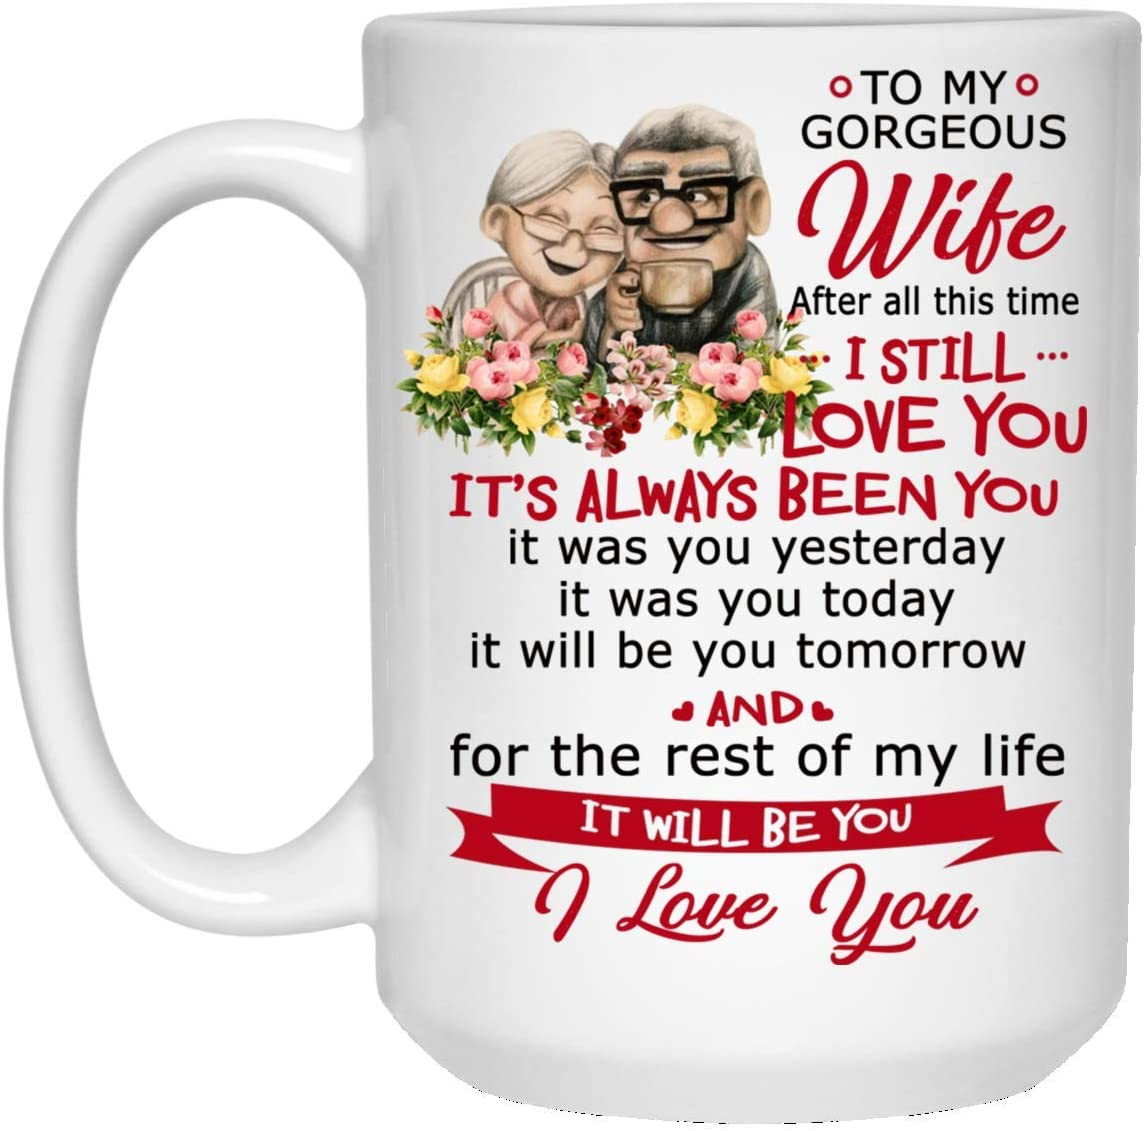 Amazon Com Meaningful Up To My Wife Coffee Mug White 15 Oz Romantic Gift Carl And Ellie Gift Ideas For Love Unique Gift For Couples Partner Her On Valentine S Day Birthday